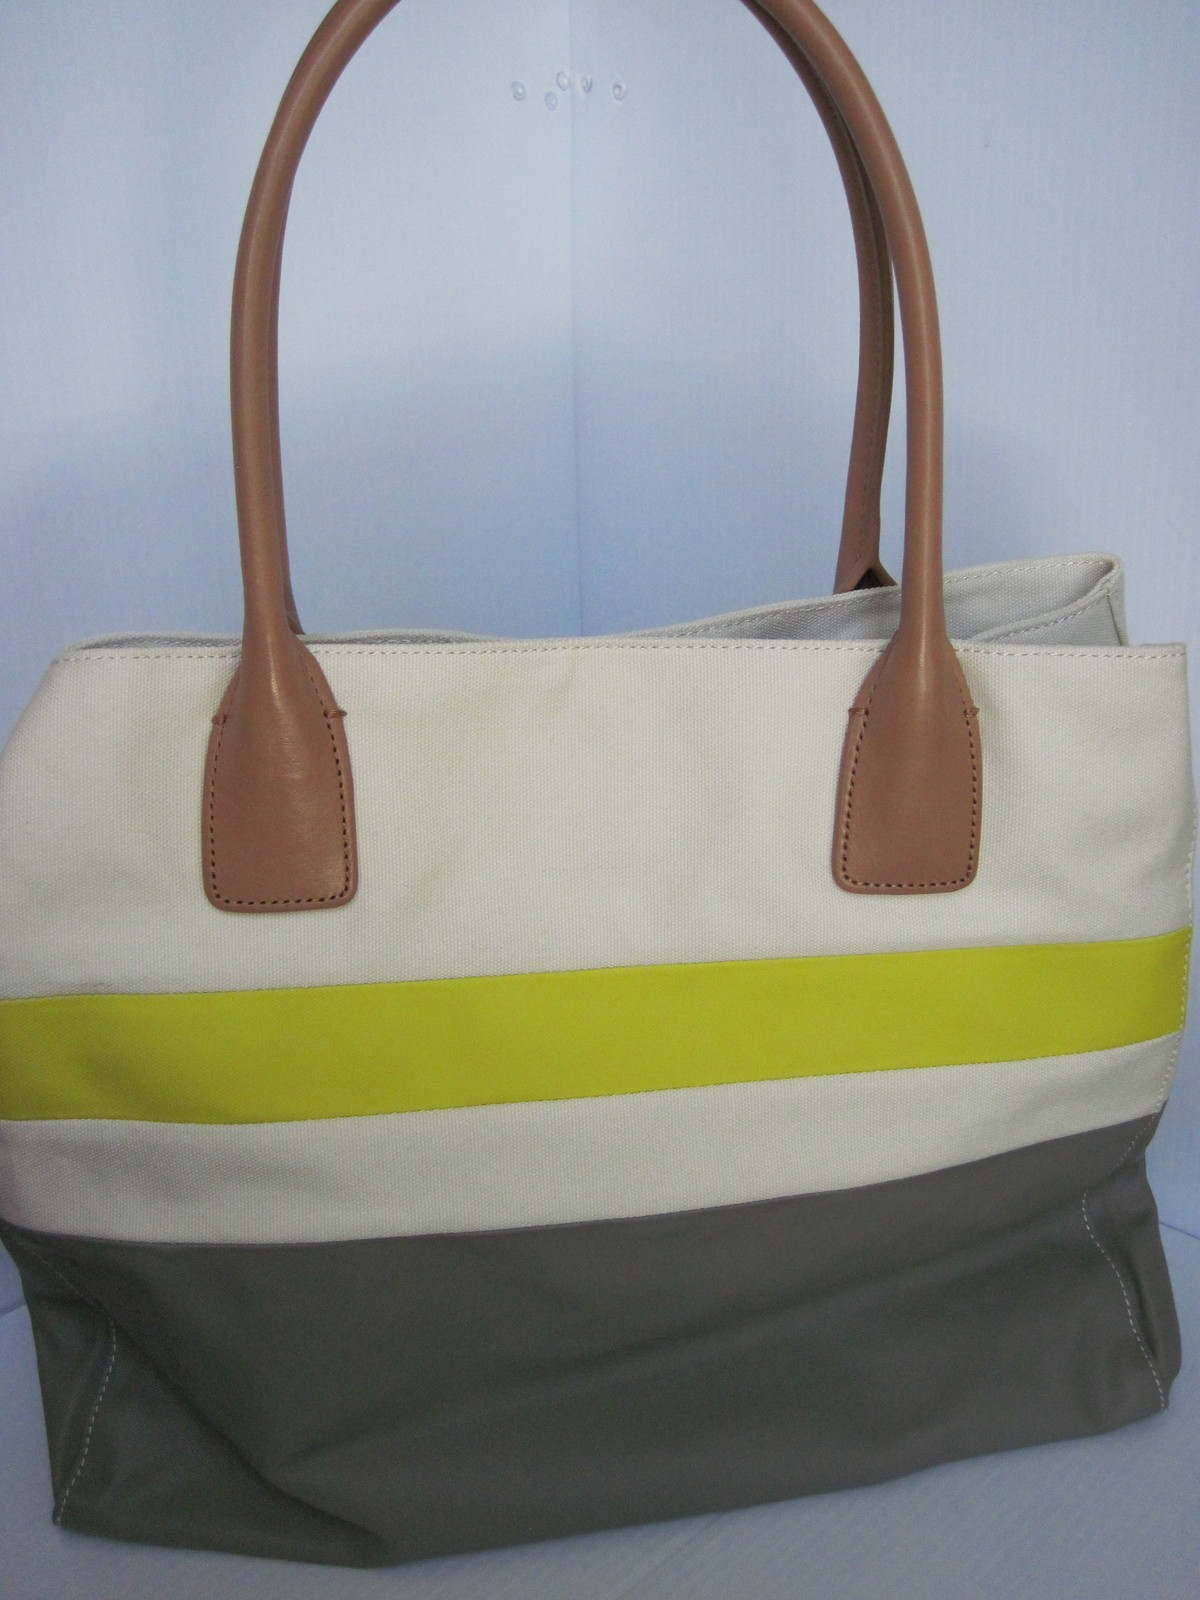 Tory Burch Canvas Dipped Beach Tote Shoppers Green Khaki image 3